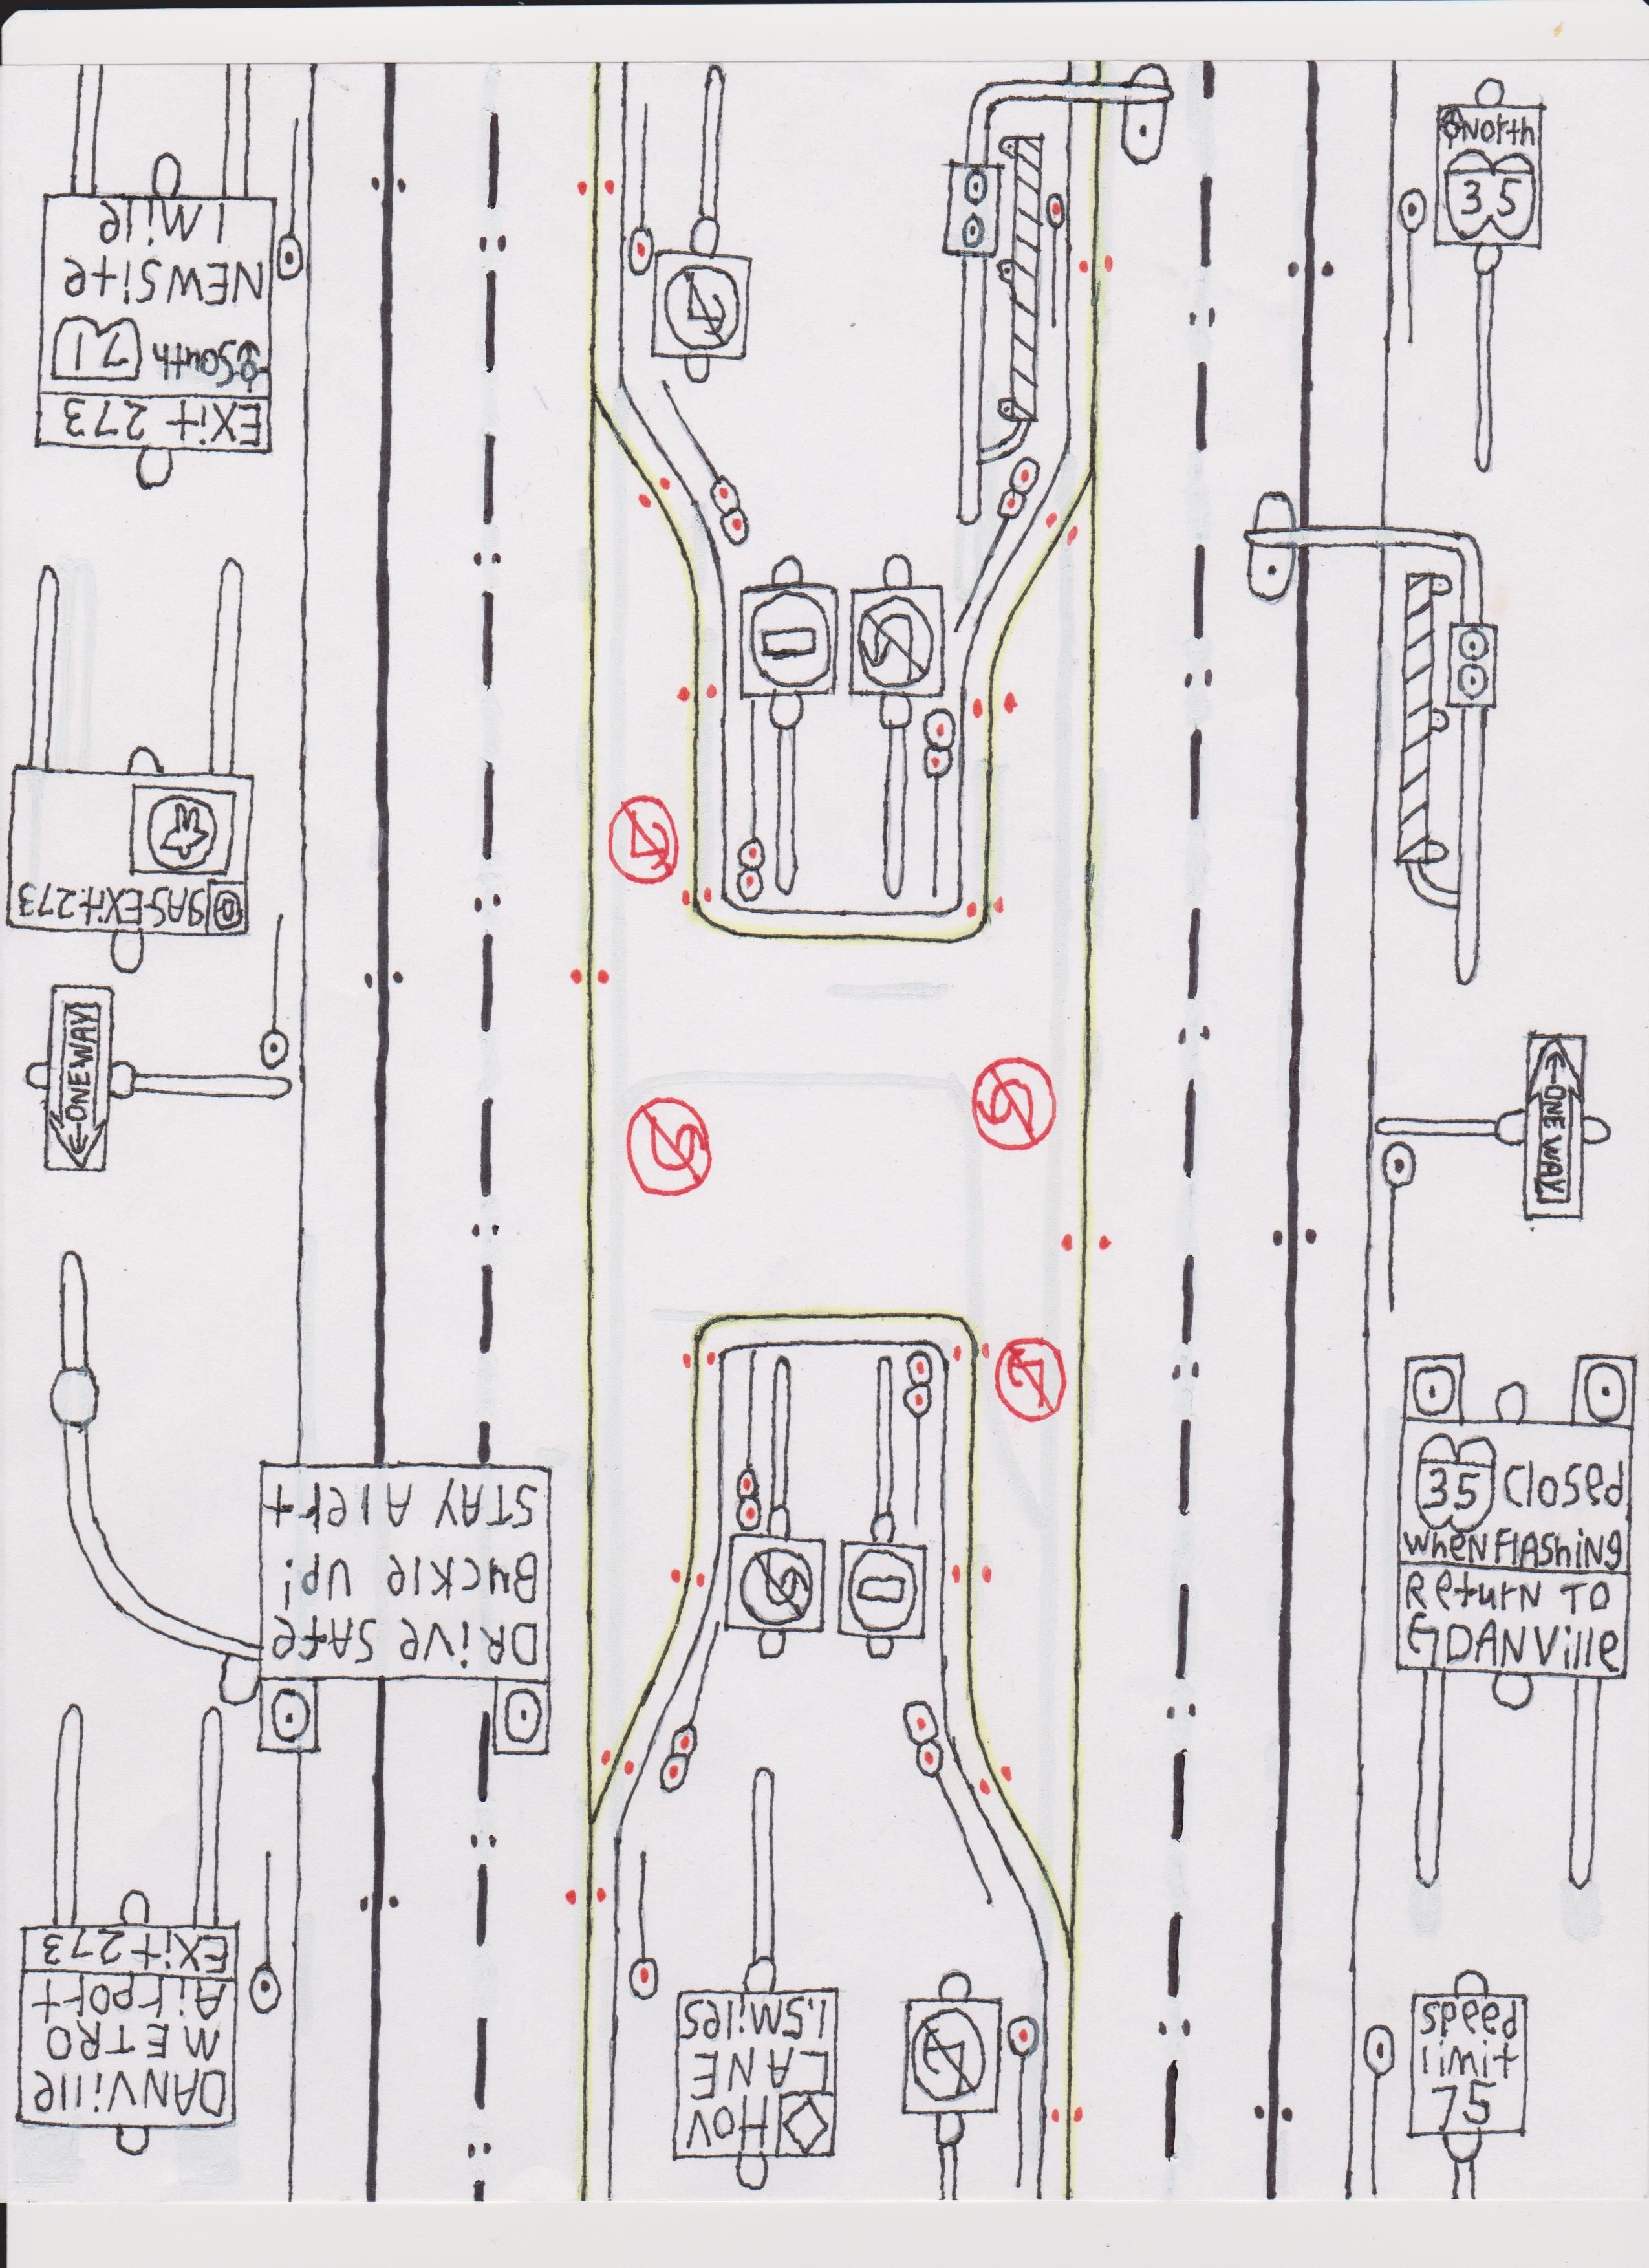 Road Drawings | Road Drawings Stuff | Pinterest | Drawing stuff and ...